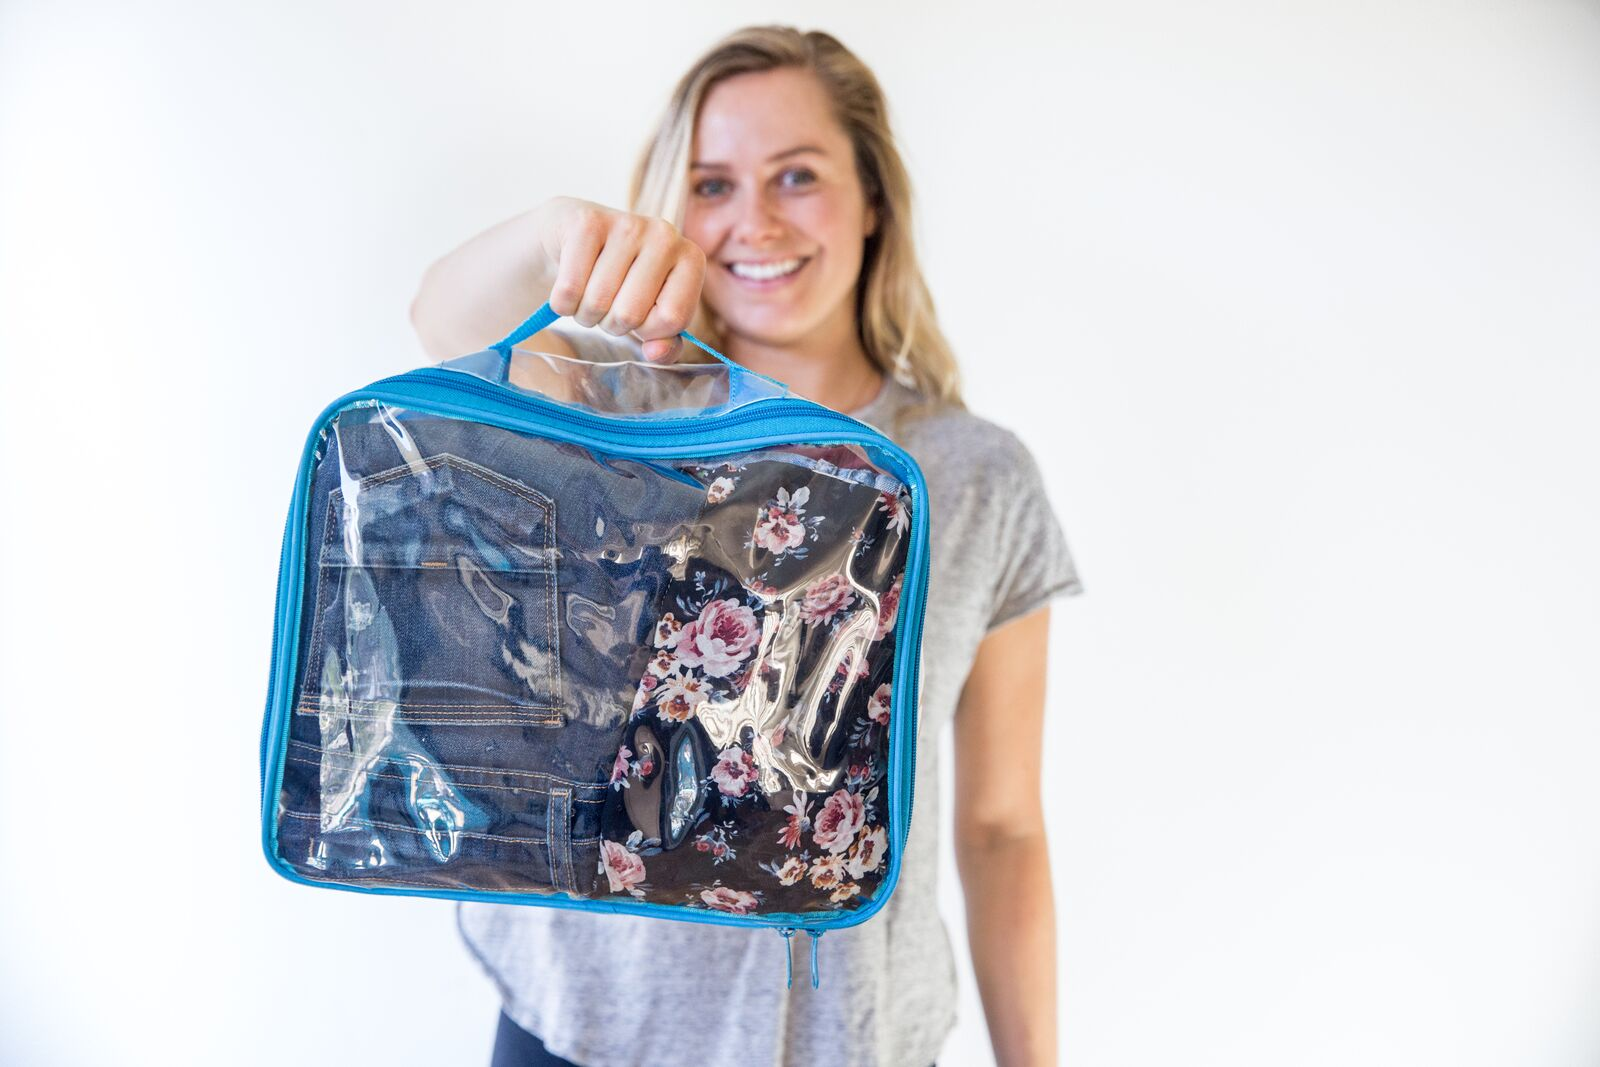 Using packing cells for suitcases by individual